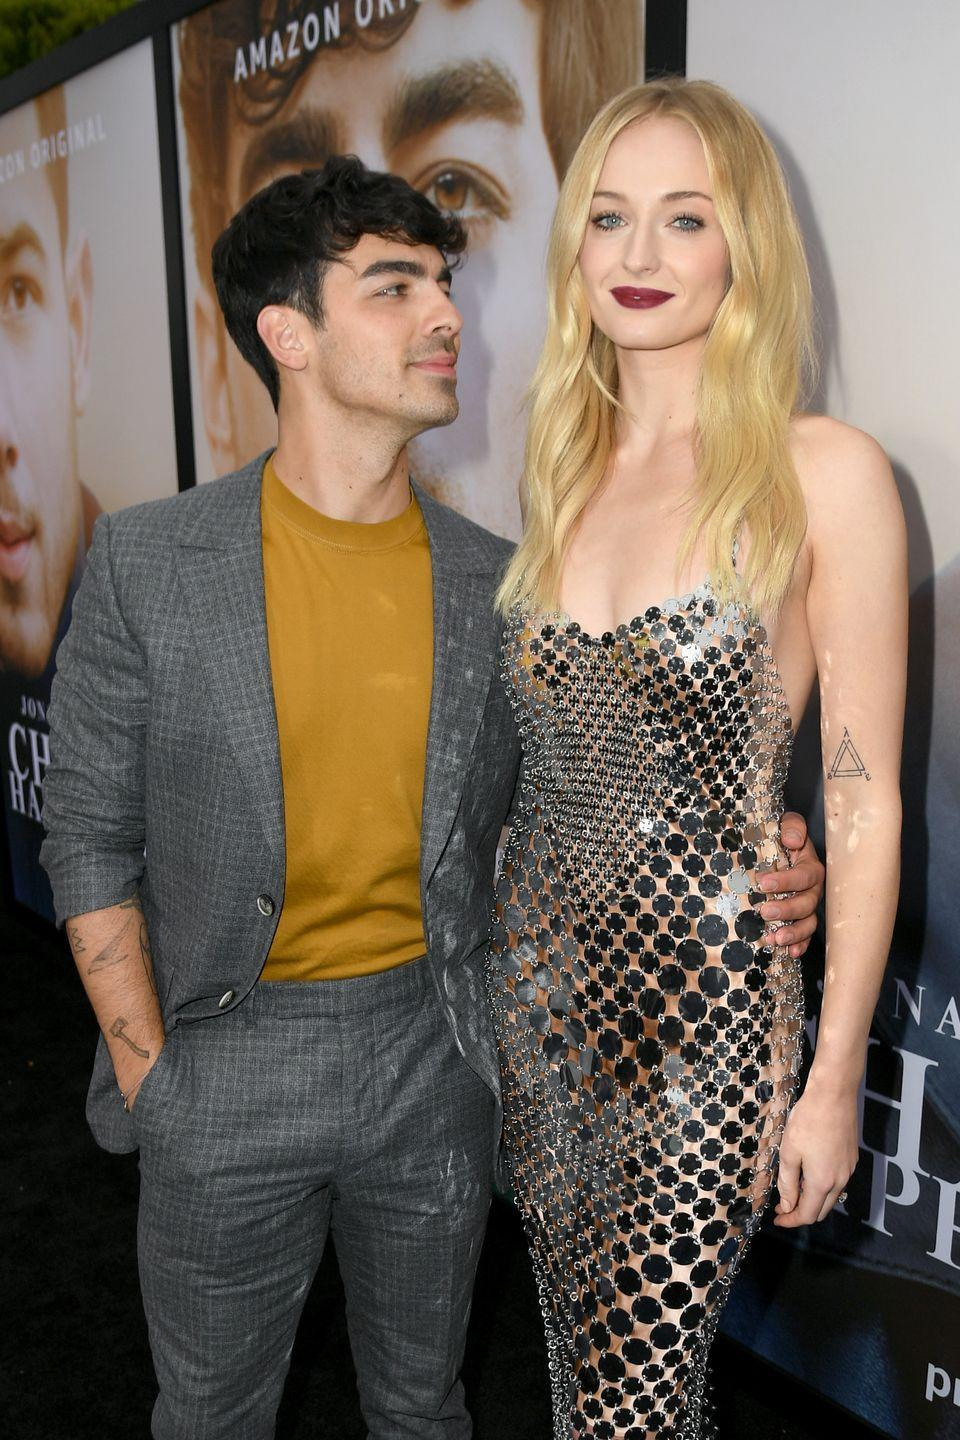 "<p>Nick isn't the only Jonas brother with a beautiful actress on his arm. Joe slid into the DMs of <em>Game of Thrones</em> star Sophie Turner, and the rest is history.</p><p>""He's the most fun, energetic, positive person I've ever seen,"" Turner told <em><a href=""https://www.harpersbazaar.com/uk/fashion/fashion-news/a26959074/sophie-turner-may-cover/"" rel=""nofollow noopener"" target=""_blank"" data-ylk=""slk:Harper's Bazaar UK"" class=""link rapid-noclick-resp"">Harper's Bazaar UK</a></em>. ""I'm pessimistic, so we balance each other out.""</p>"